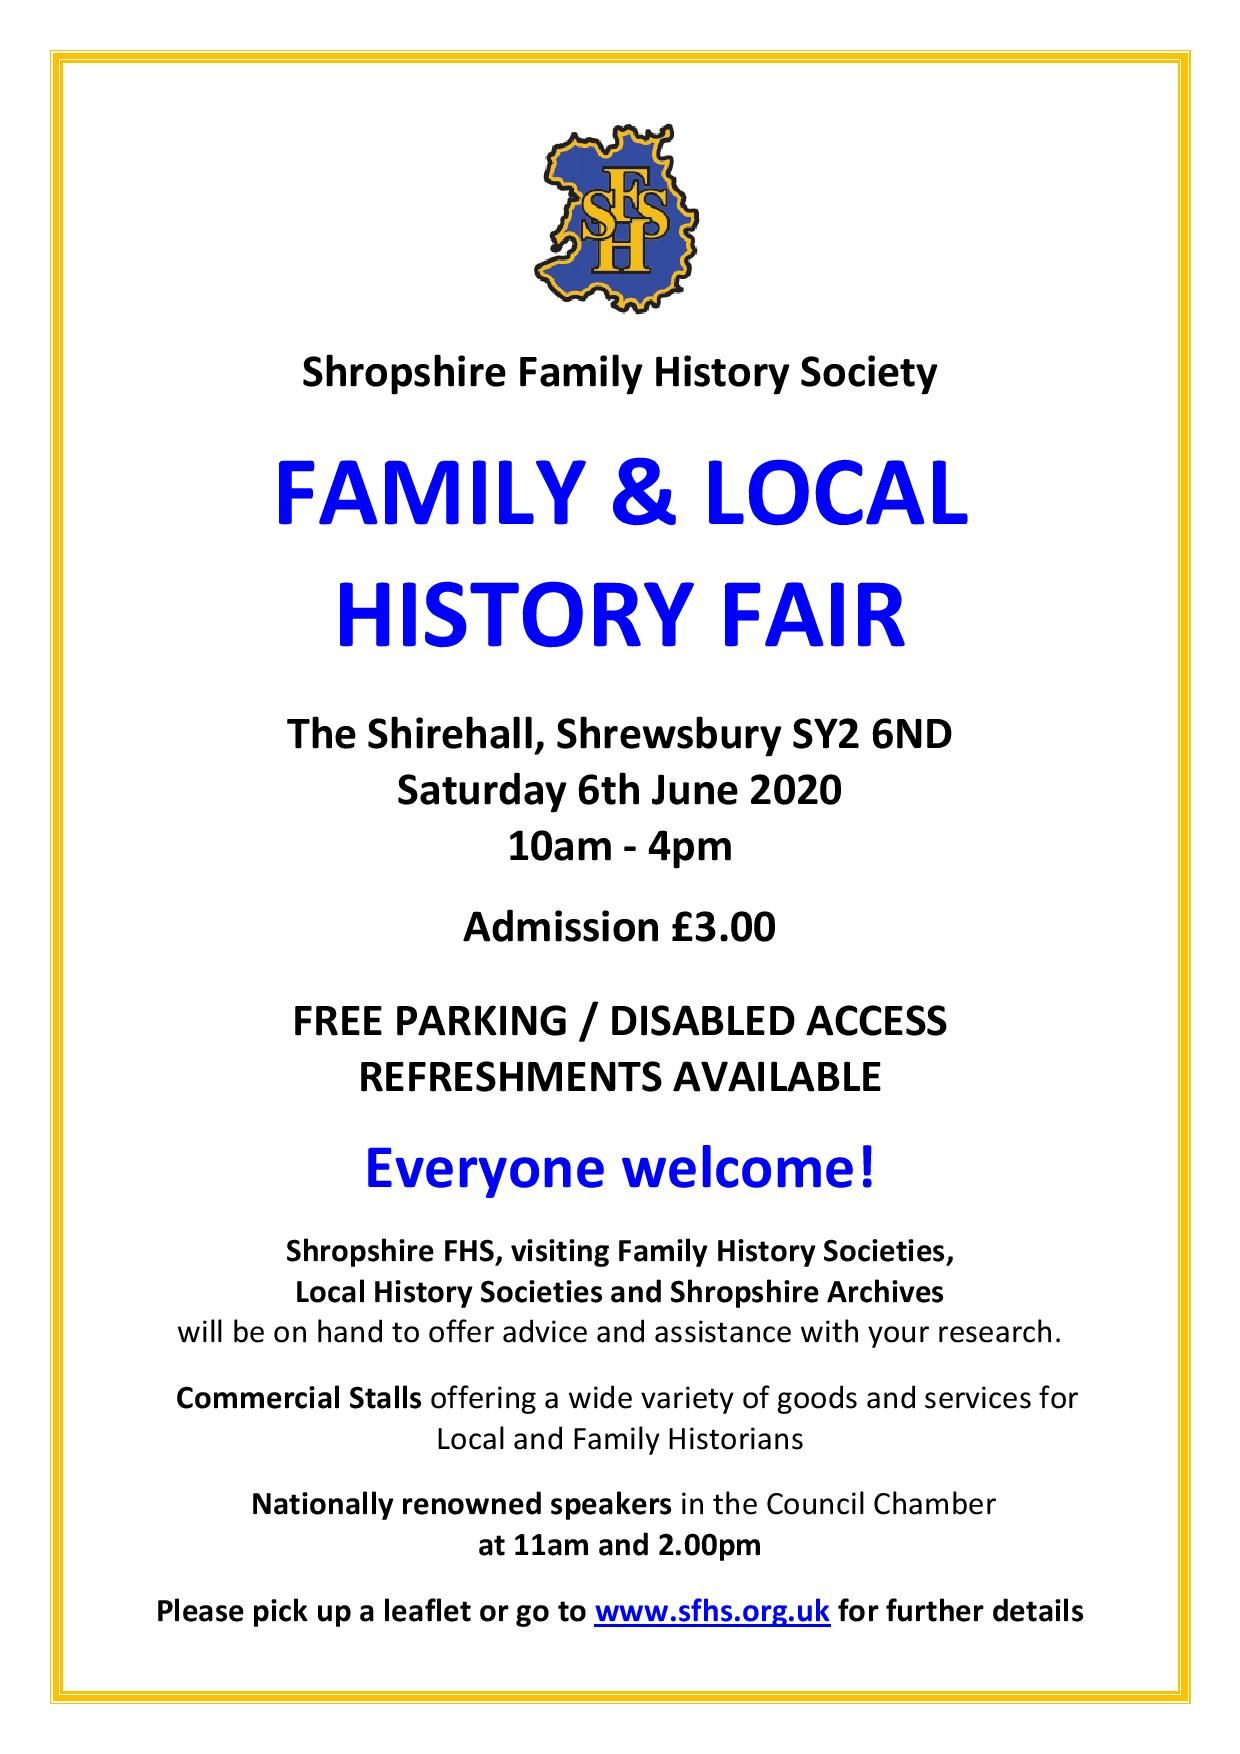 Shropshire Family History Fair